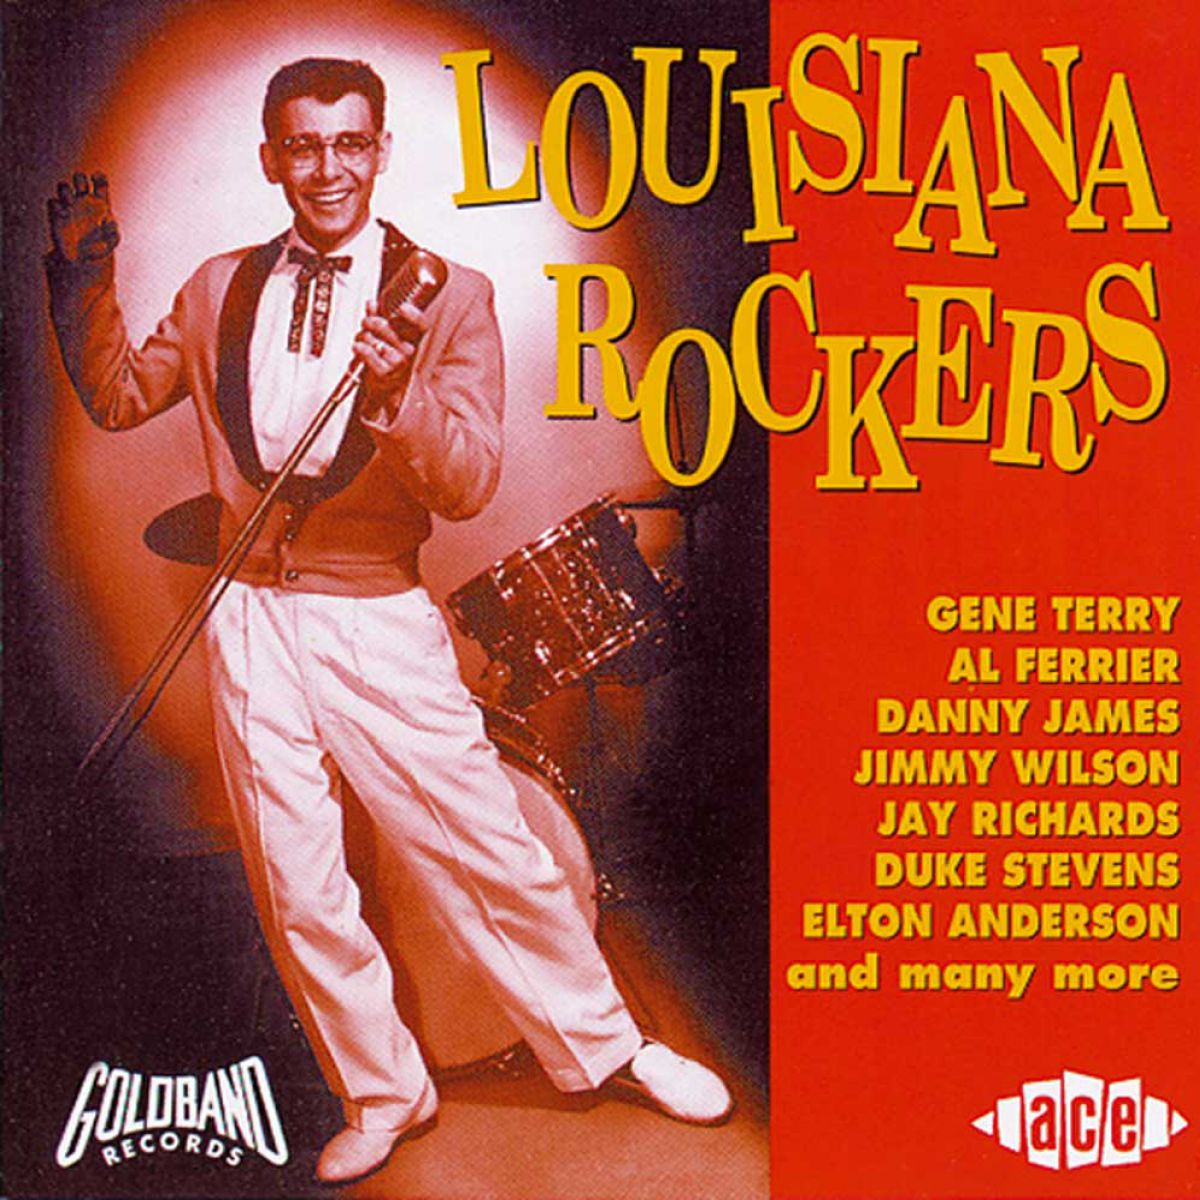 LouisianaRockers-CDC_1200_1200